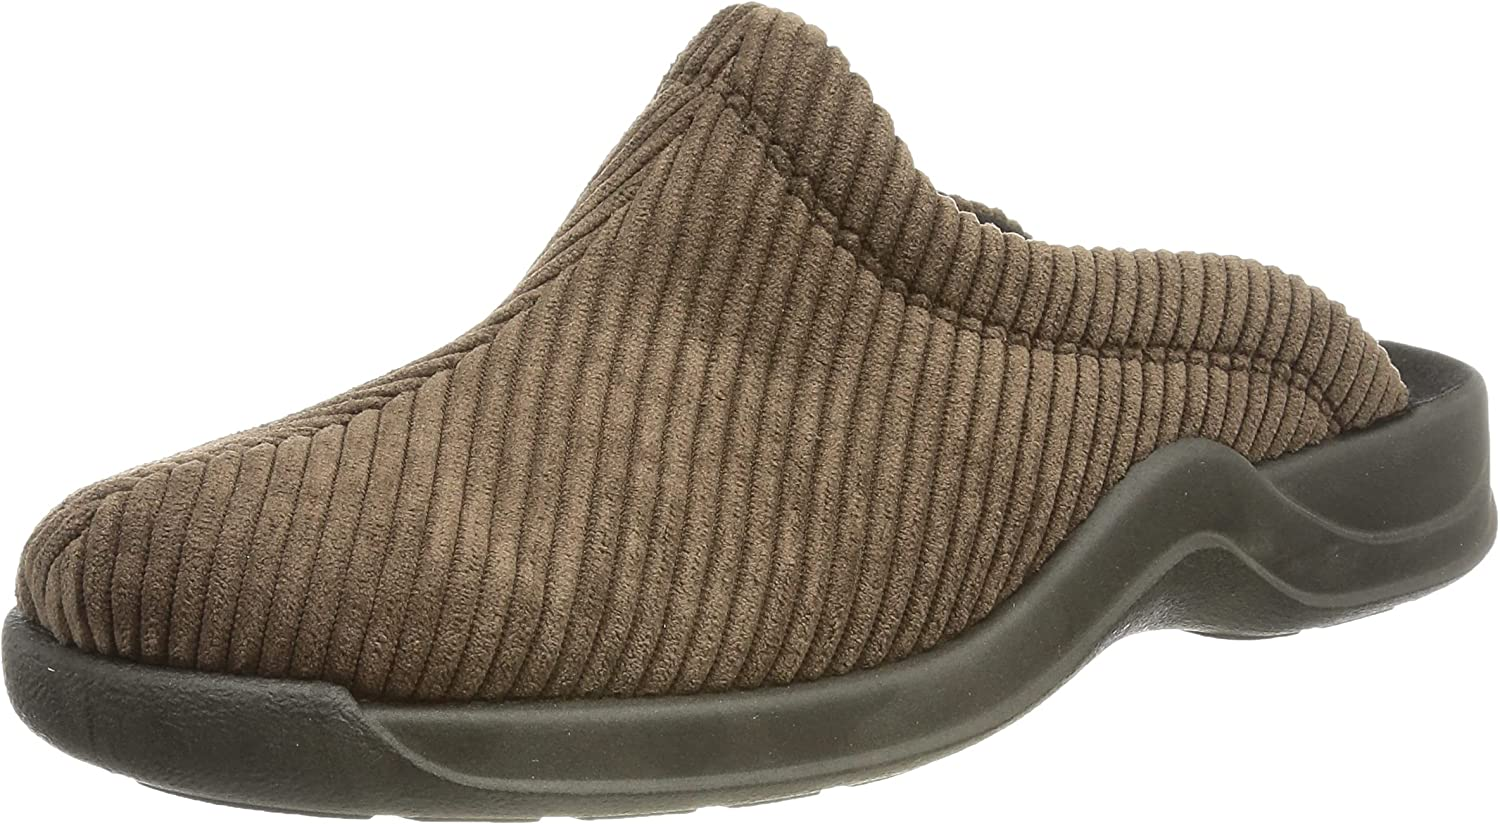 Rohde Free Shipping New New Orleans Mall Men's Mule Flat